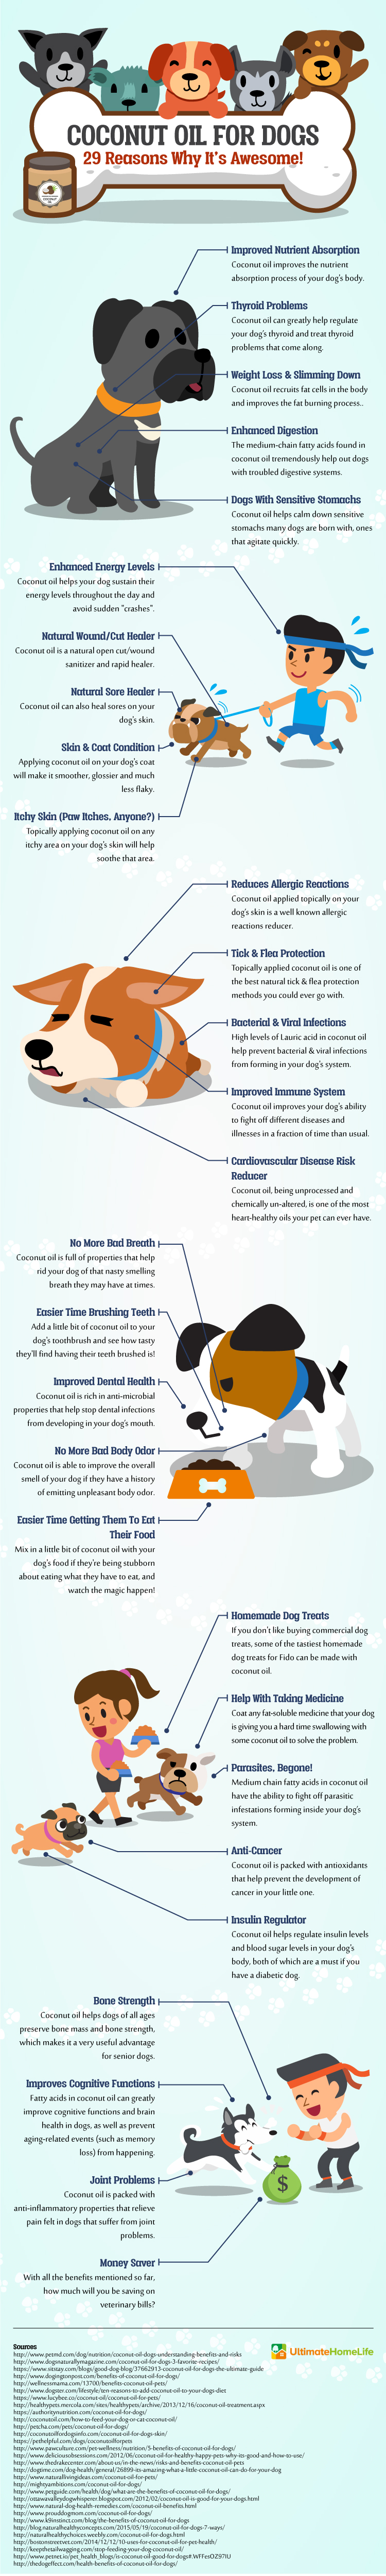 Experts Weigh in on Coconut Oil for Dogs Infographic